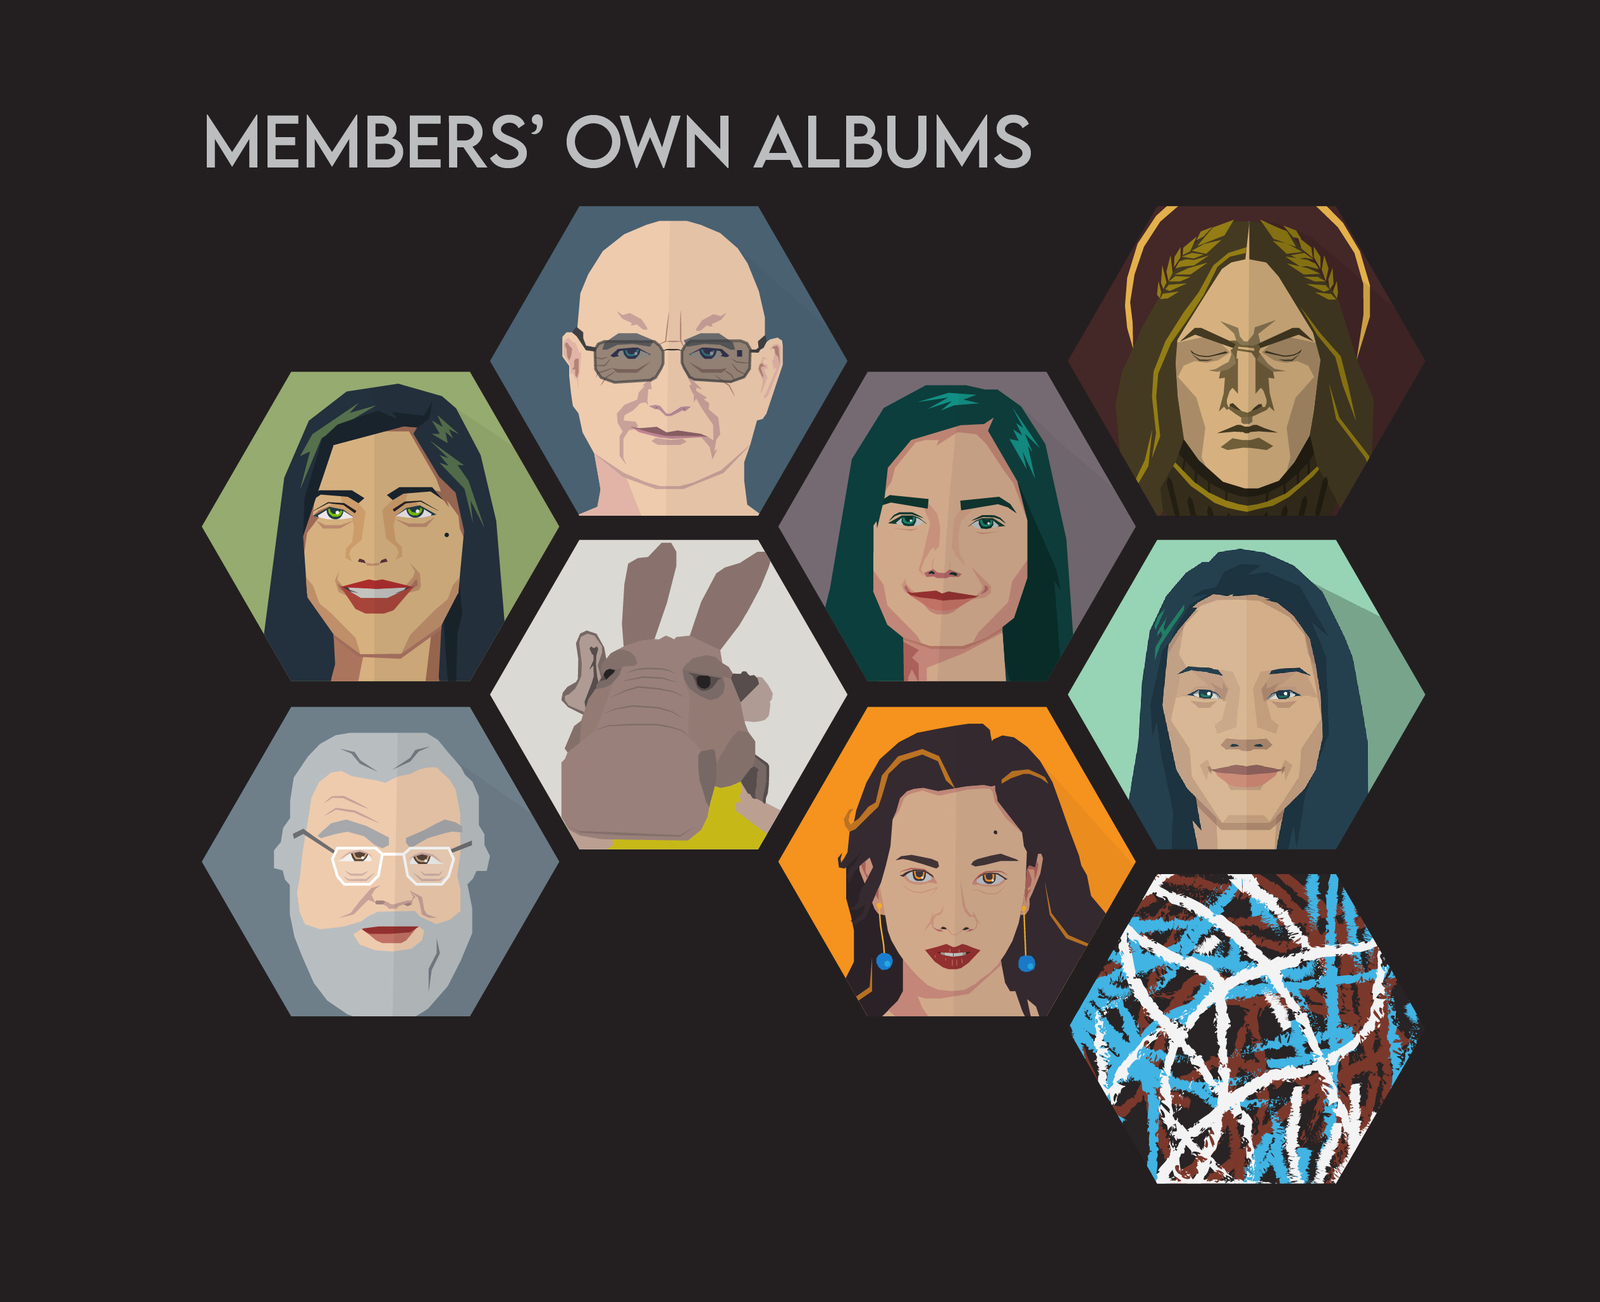 Members' own albums icon